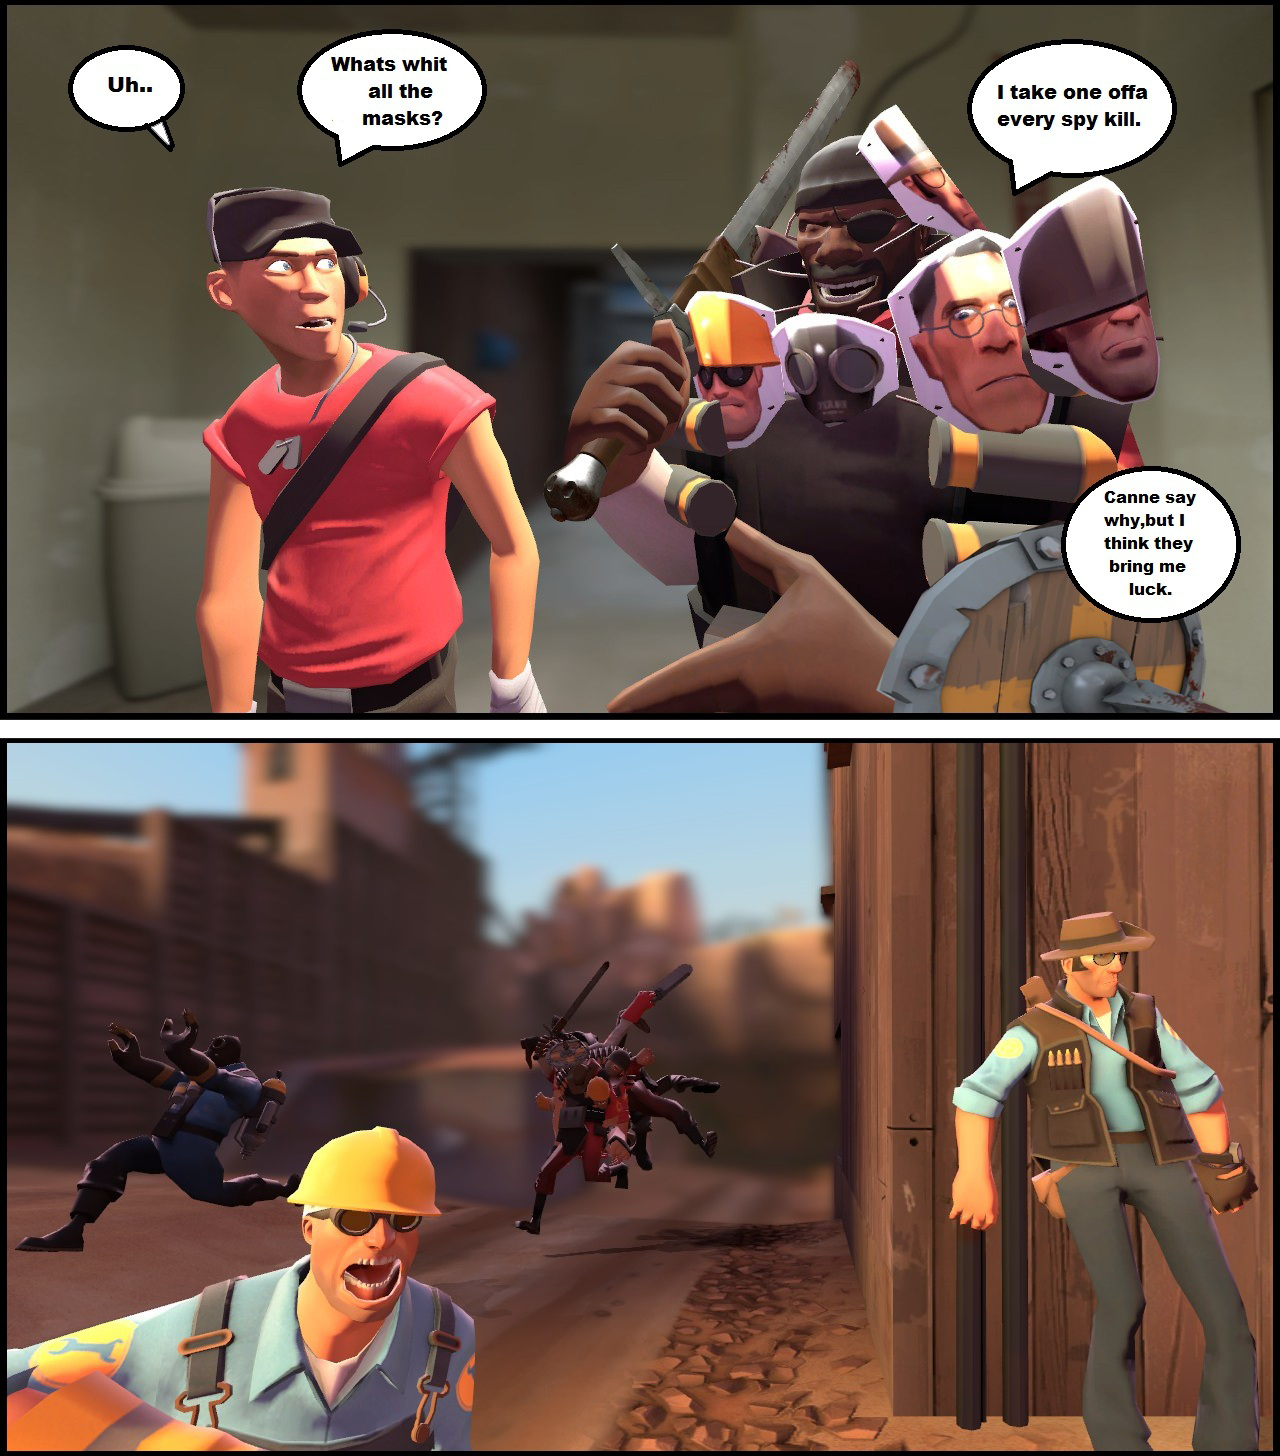 6a2 image 305461] team fortress 2 know your meme